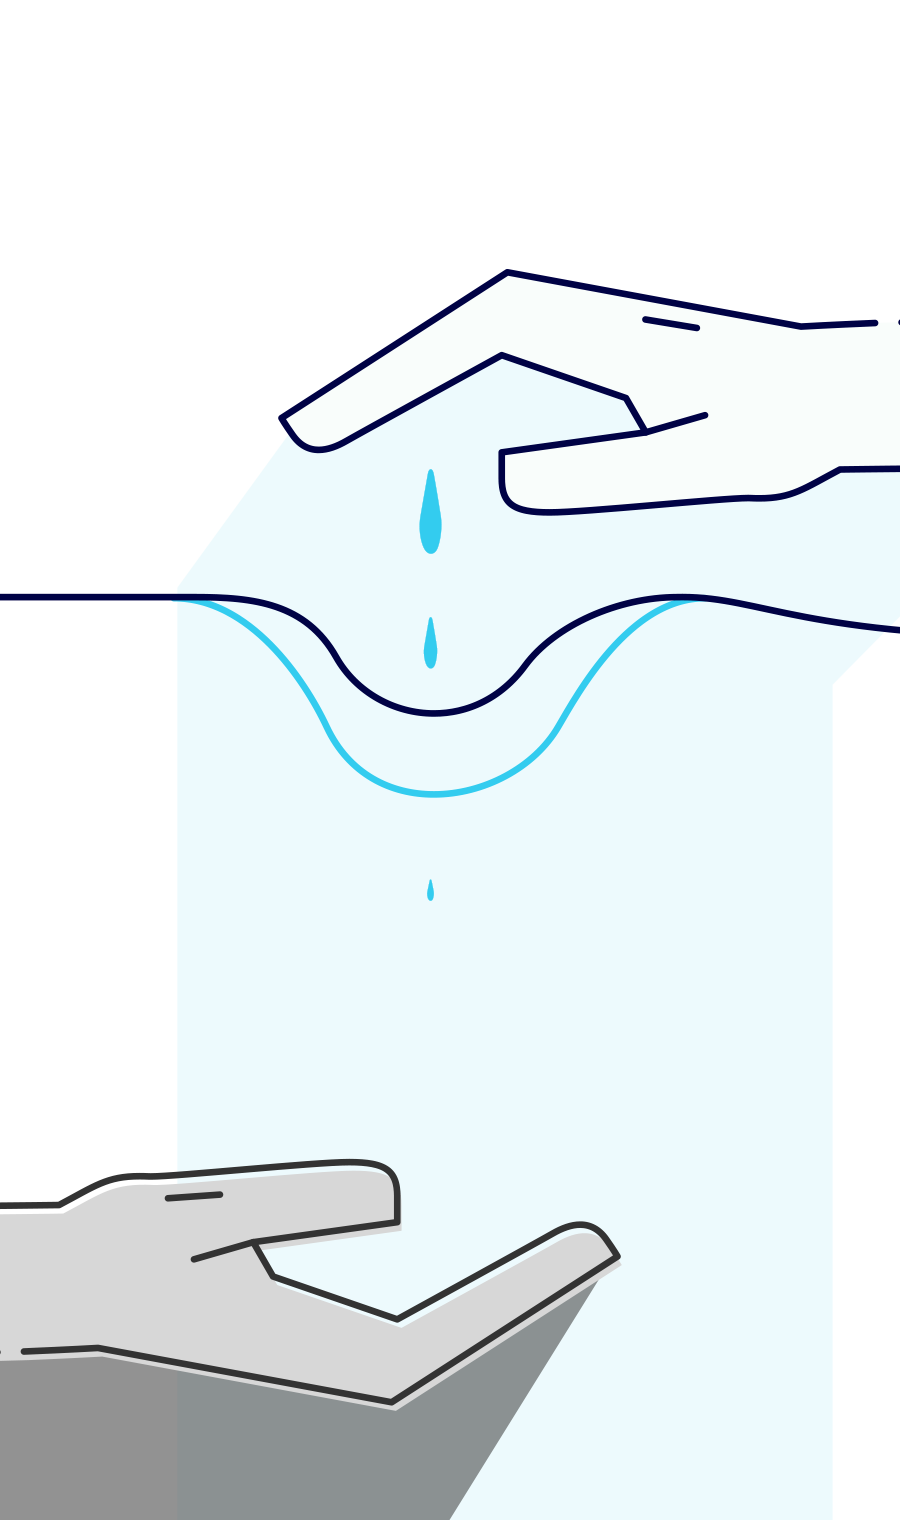 Illustration of two hands – one supplies the other with water.